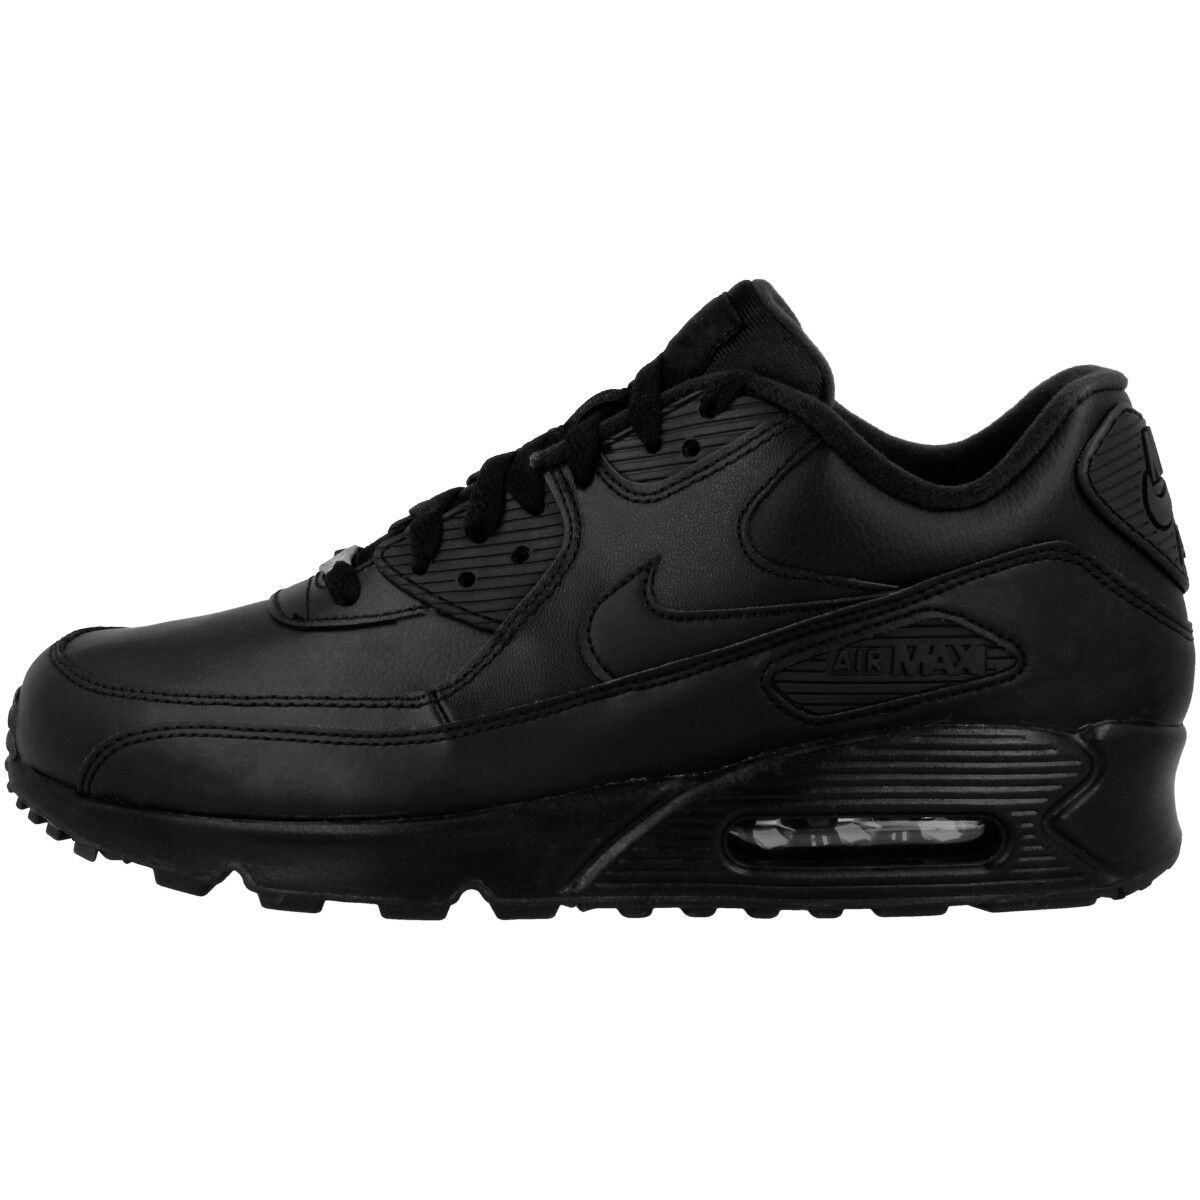 Nike Air Max 90 Leather Casual shoes Trainers Trainers Black 302519-001